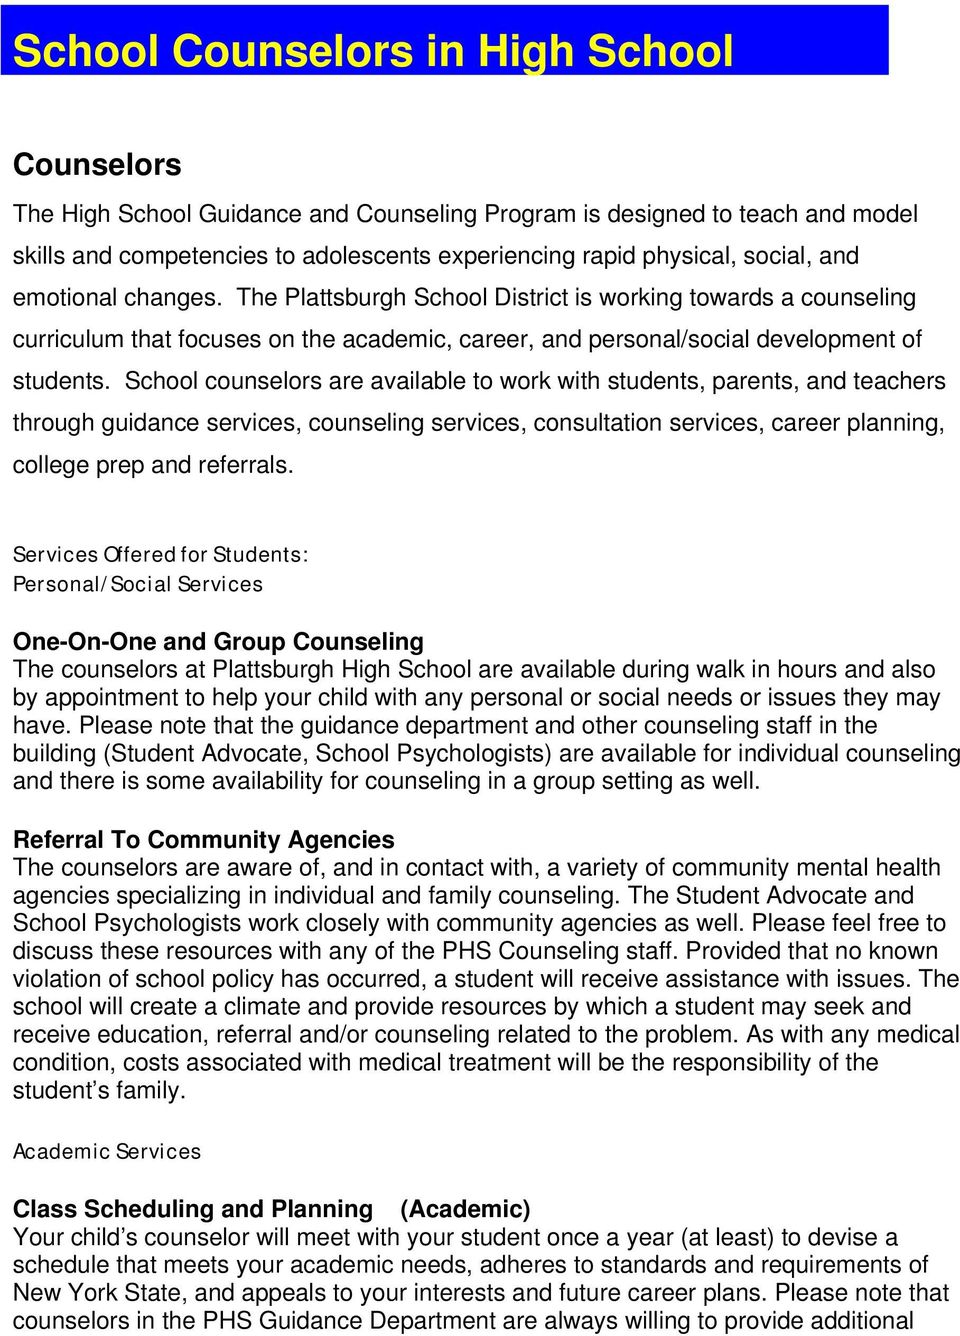 School counselors are available to work with students, parents, and teachers through guidance services, counseling services, consultation services, career planning, college prep and referrals.